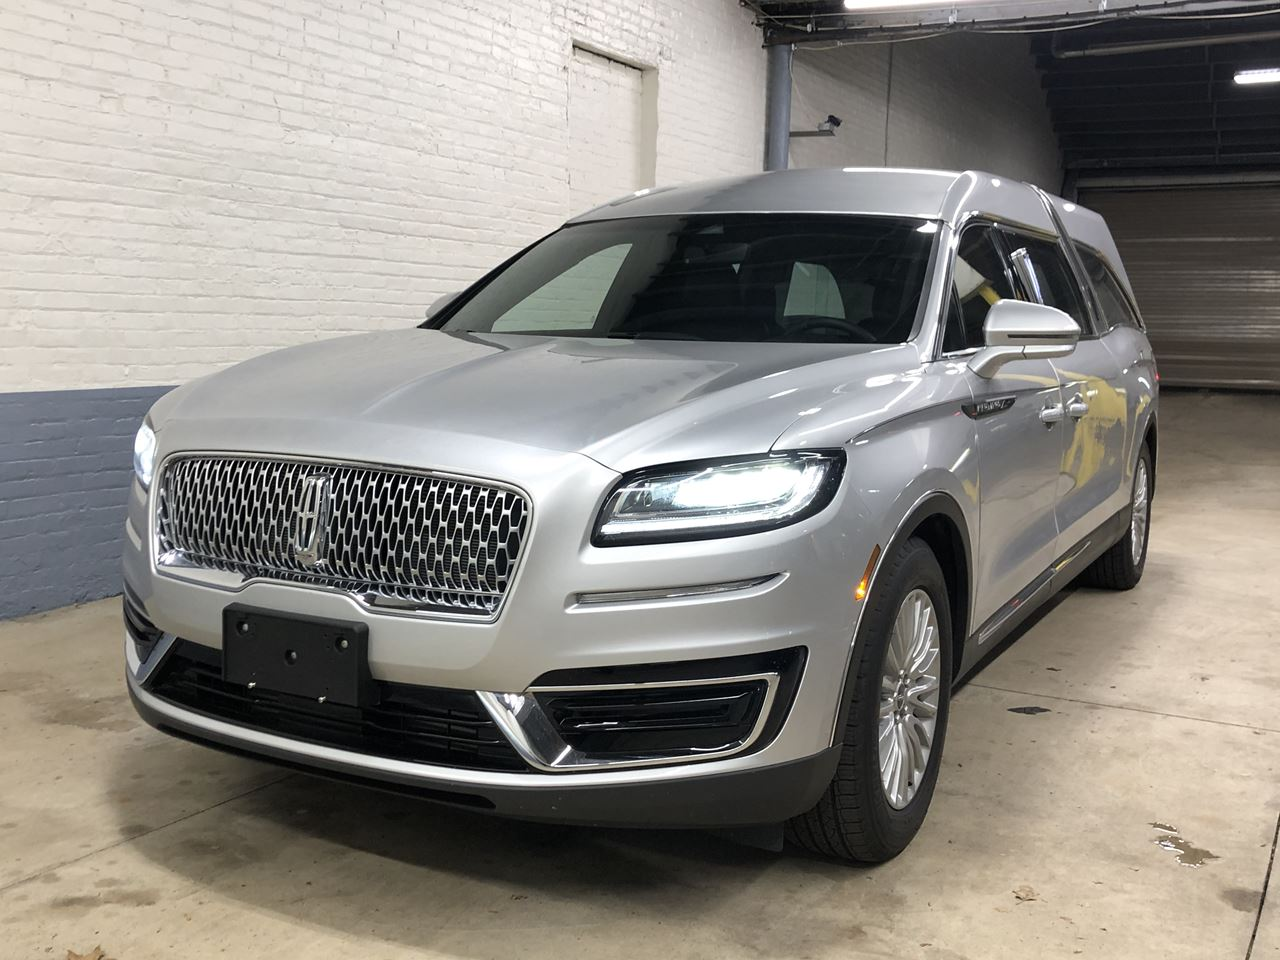 2019 Lincoln Nautilus MK Grand Legacy Limited 322 2